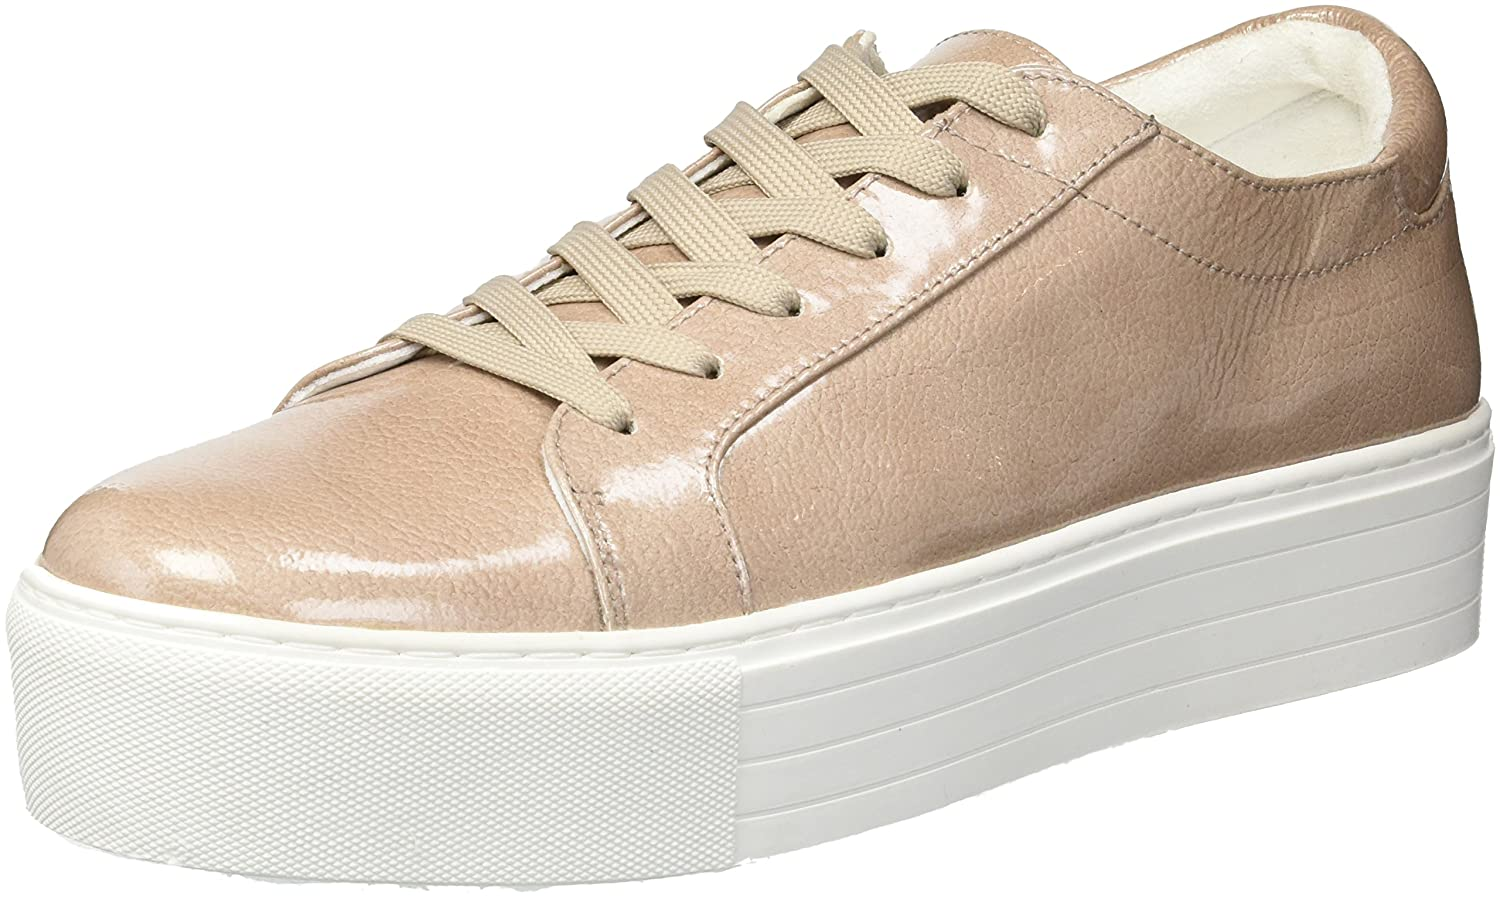 Kenneth Cole New York Women's Abbey Platform Lace-up Techni-Cole Sneaker B079ZVGR1Q 7.5 B(M) US|Nude